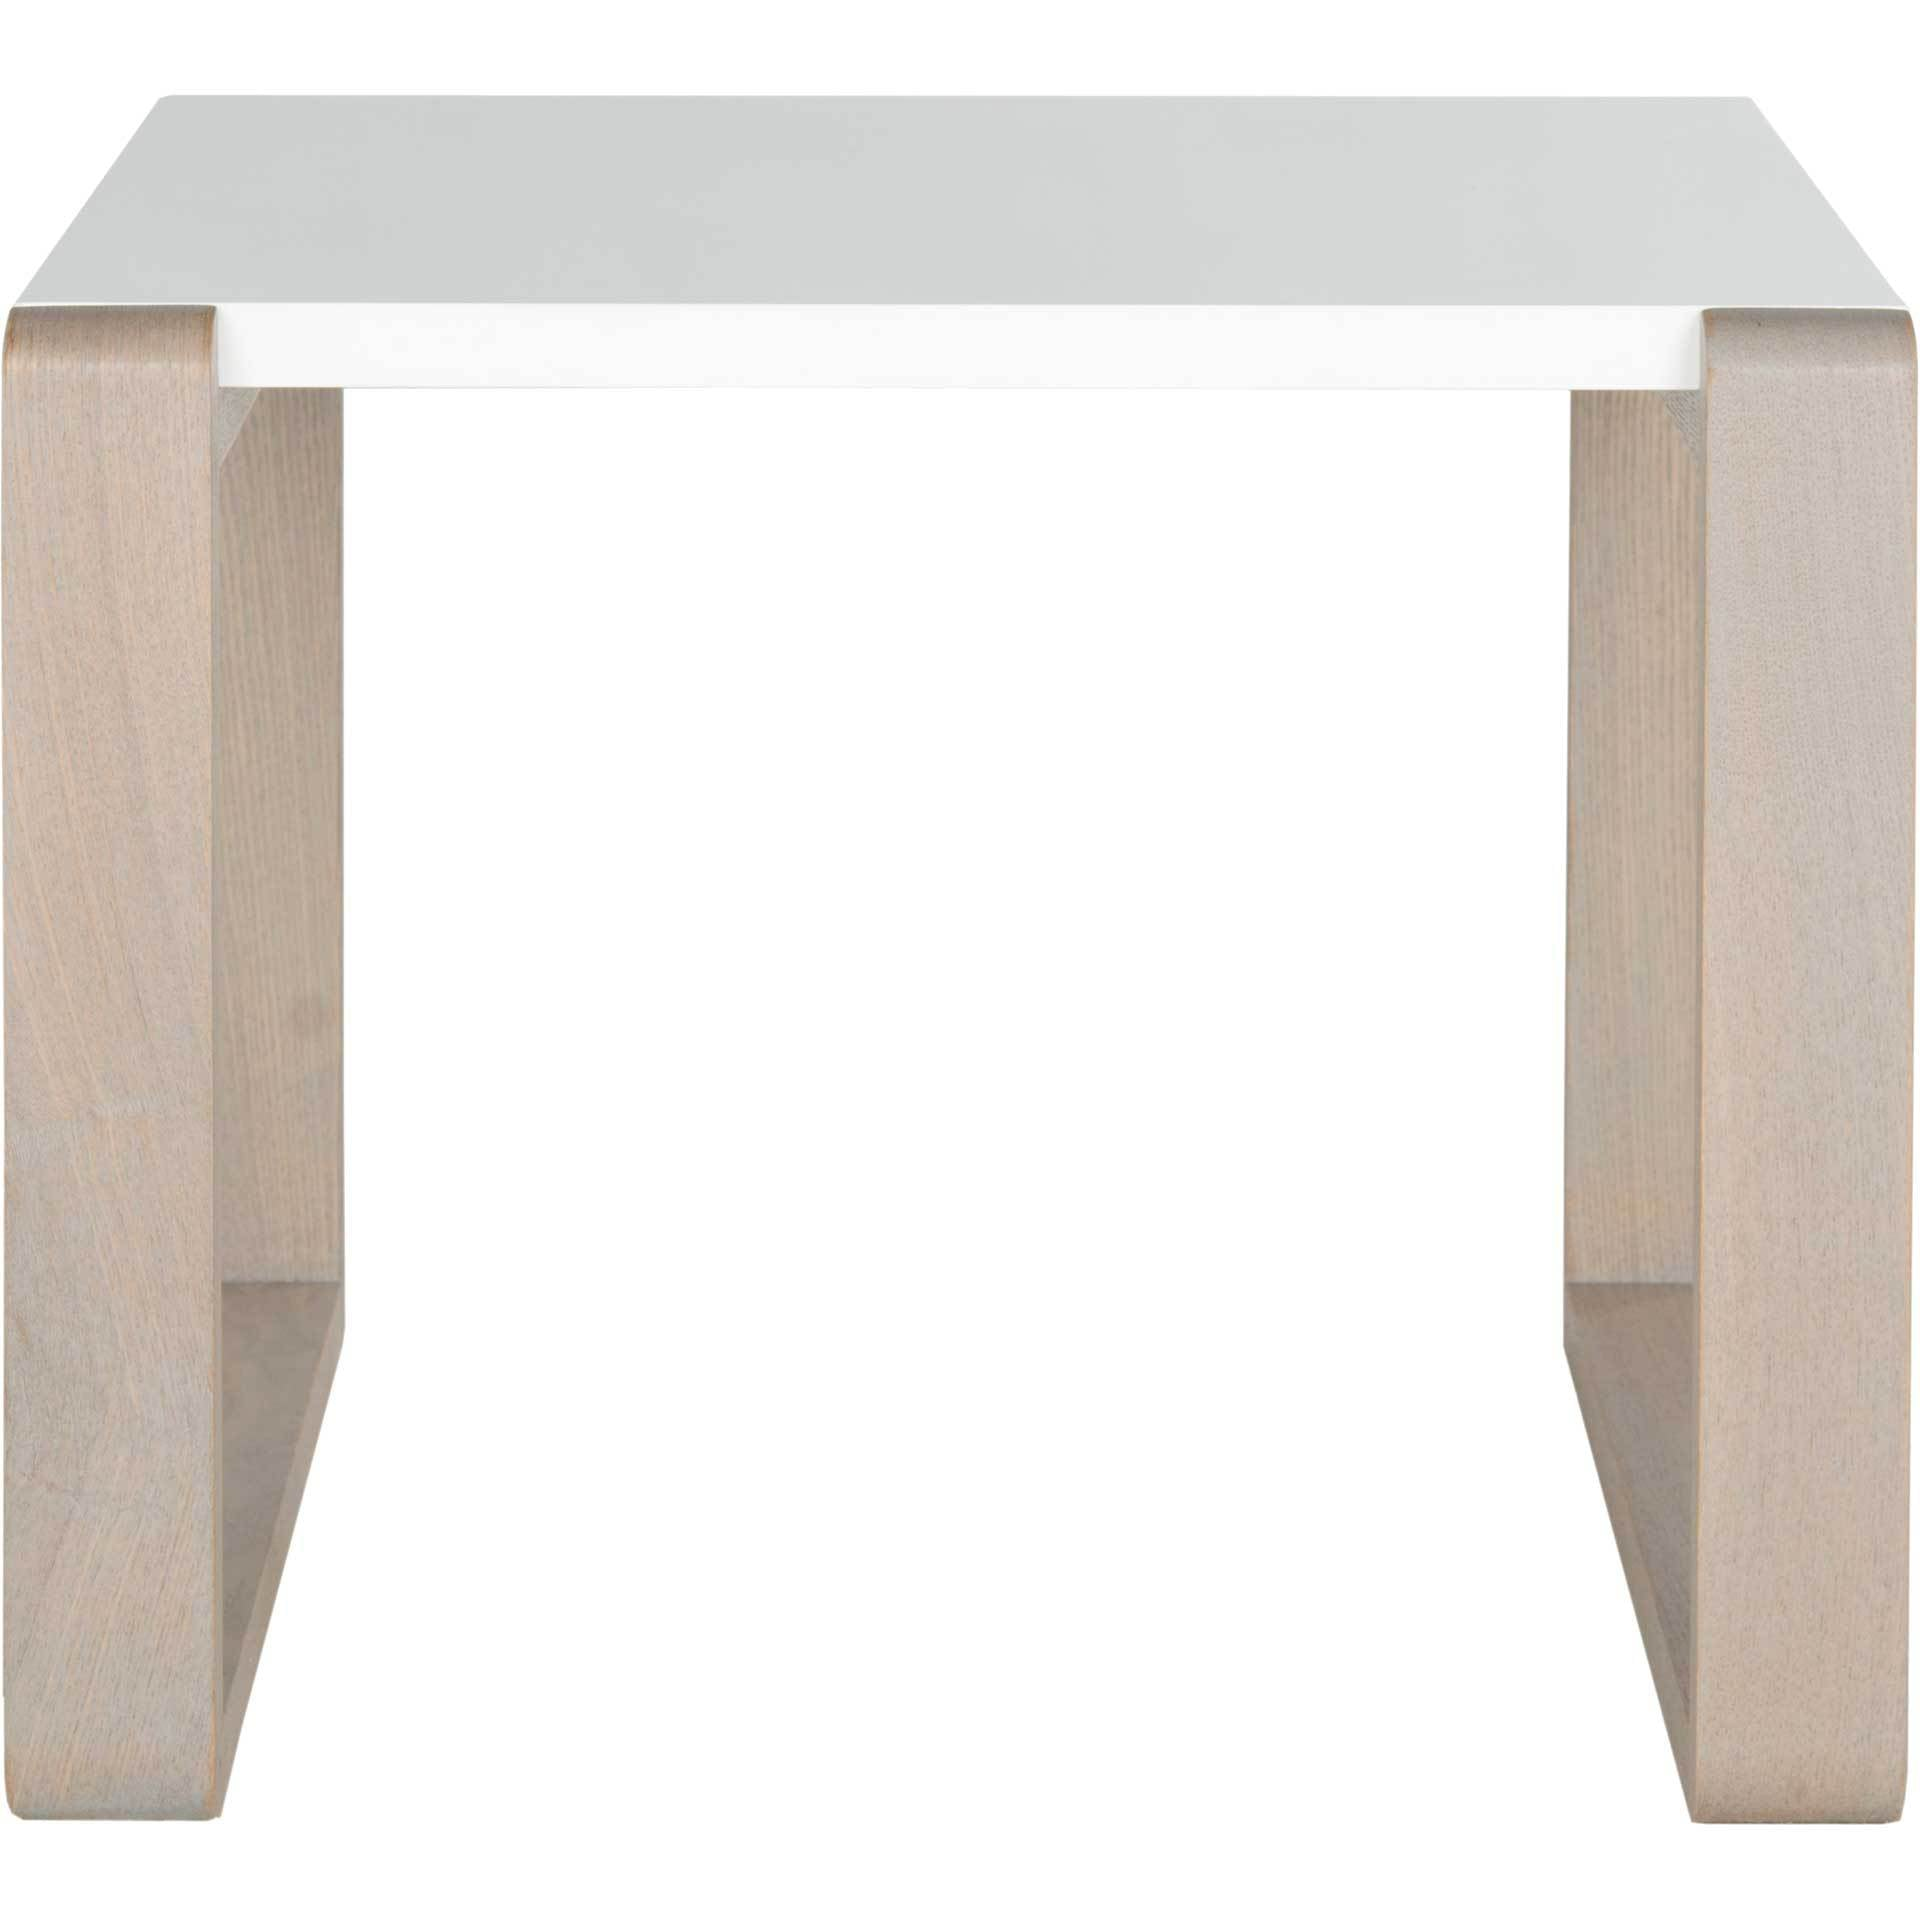 Balin Lacquer End Table White/Gray